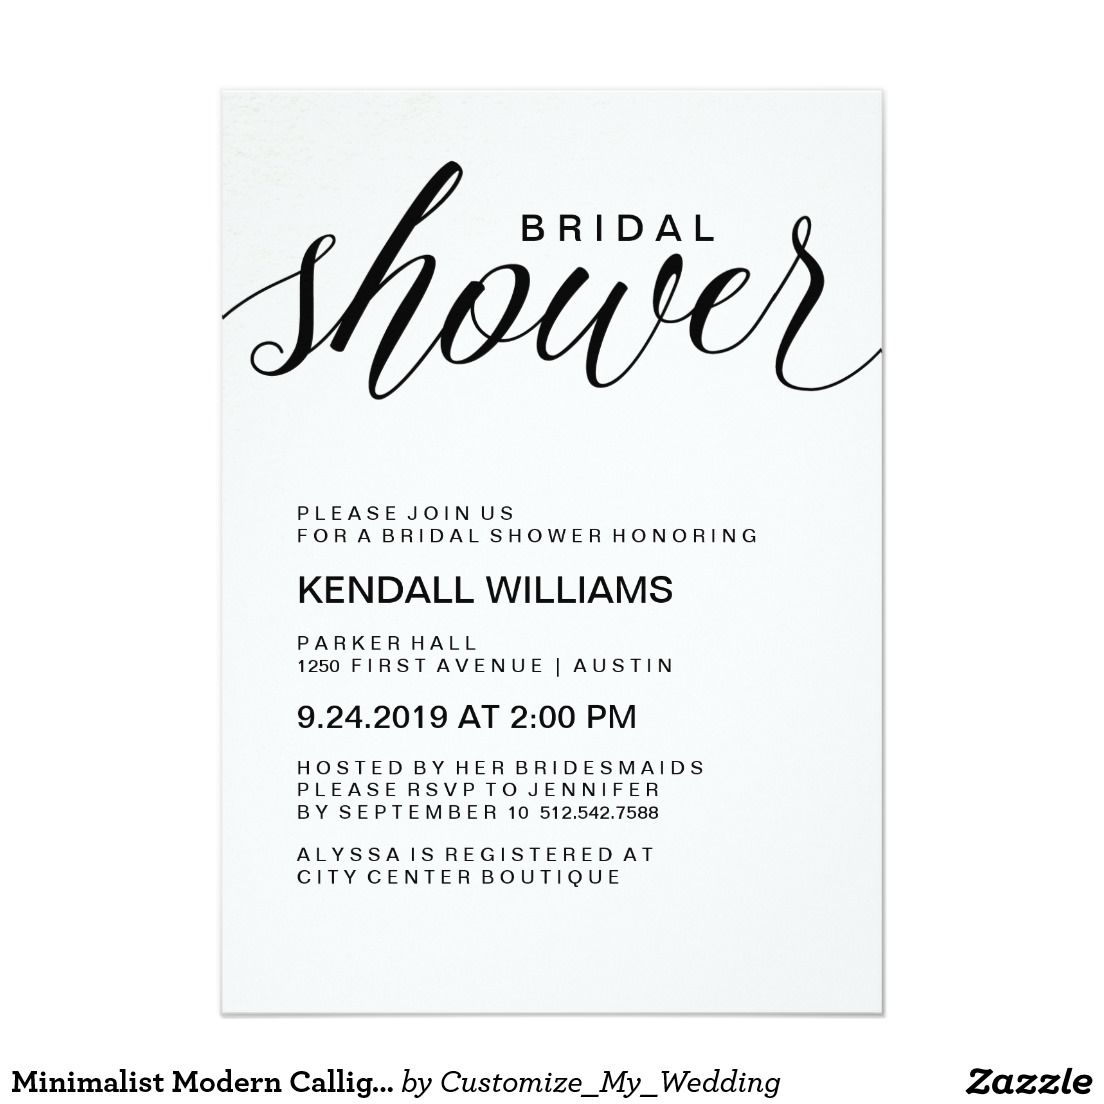 Minimalist Modern Calligraphy Bridal Shower Invitation | Stuff SOLD ...